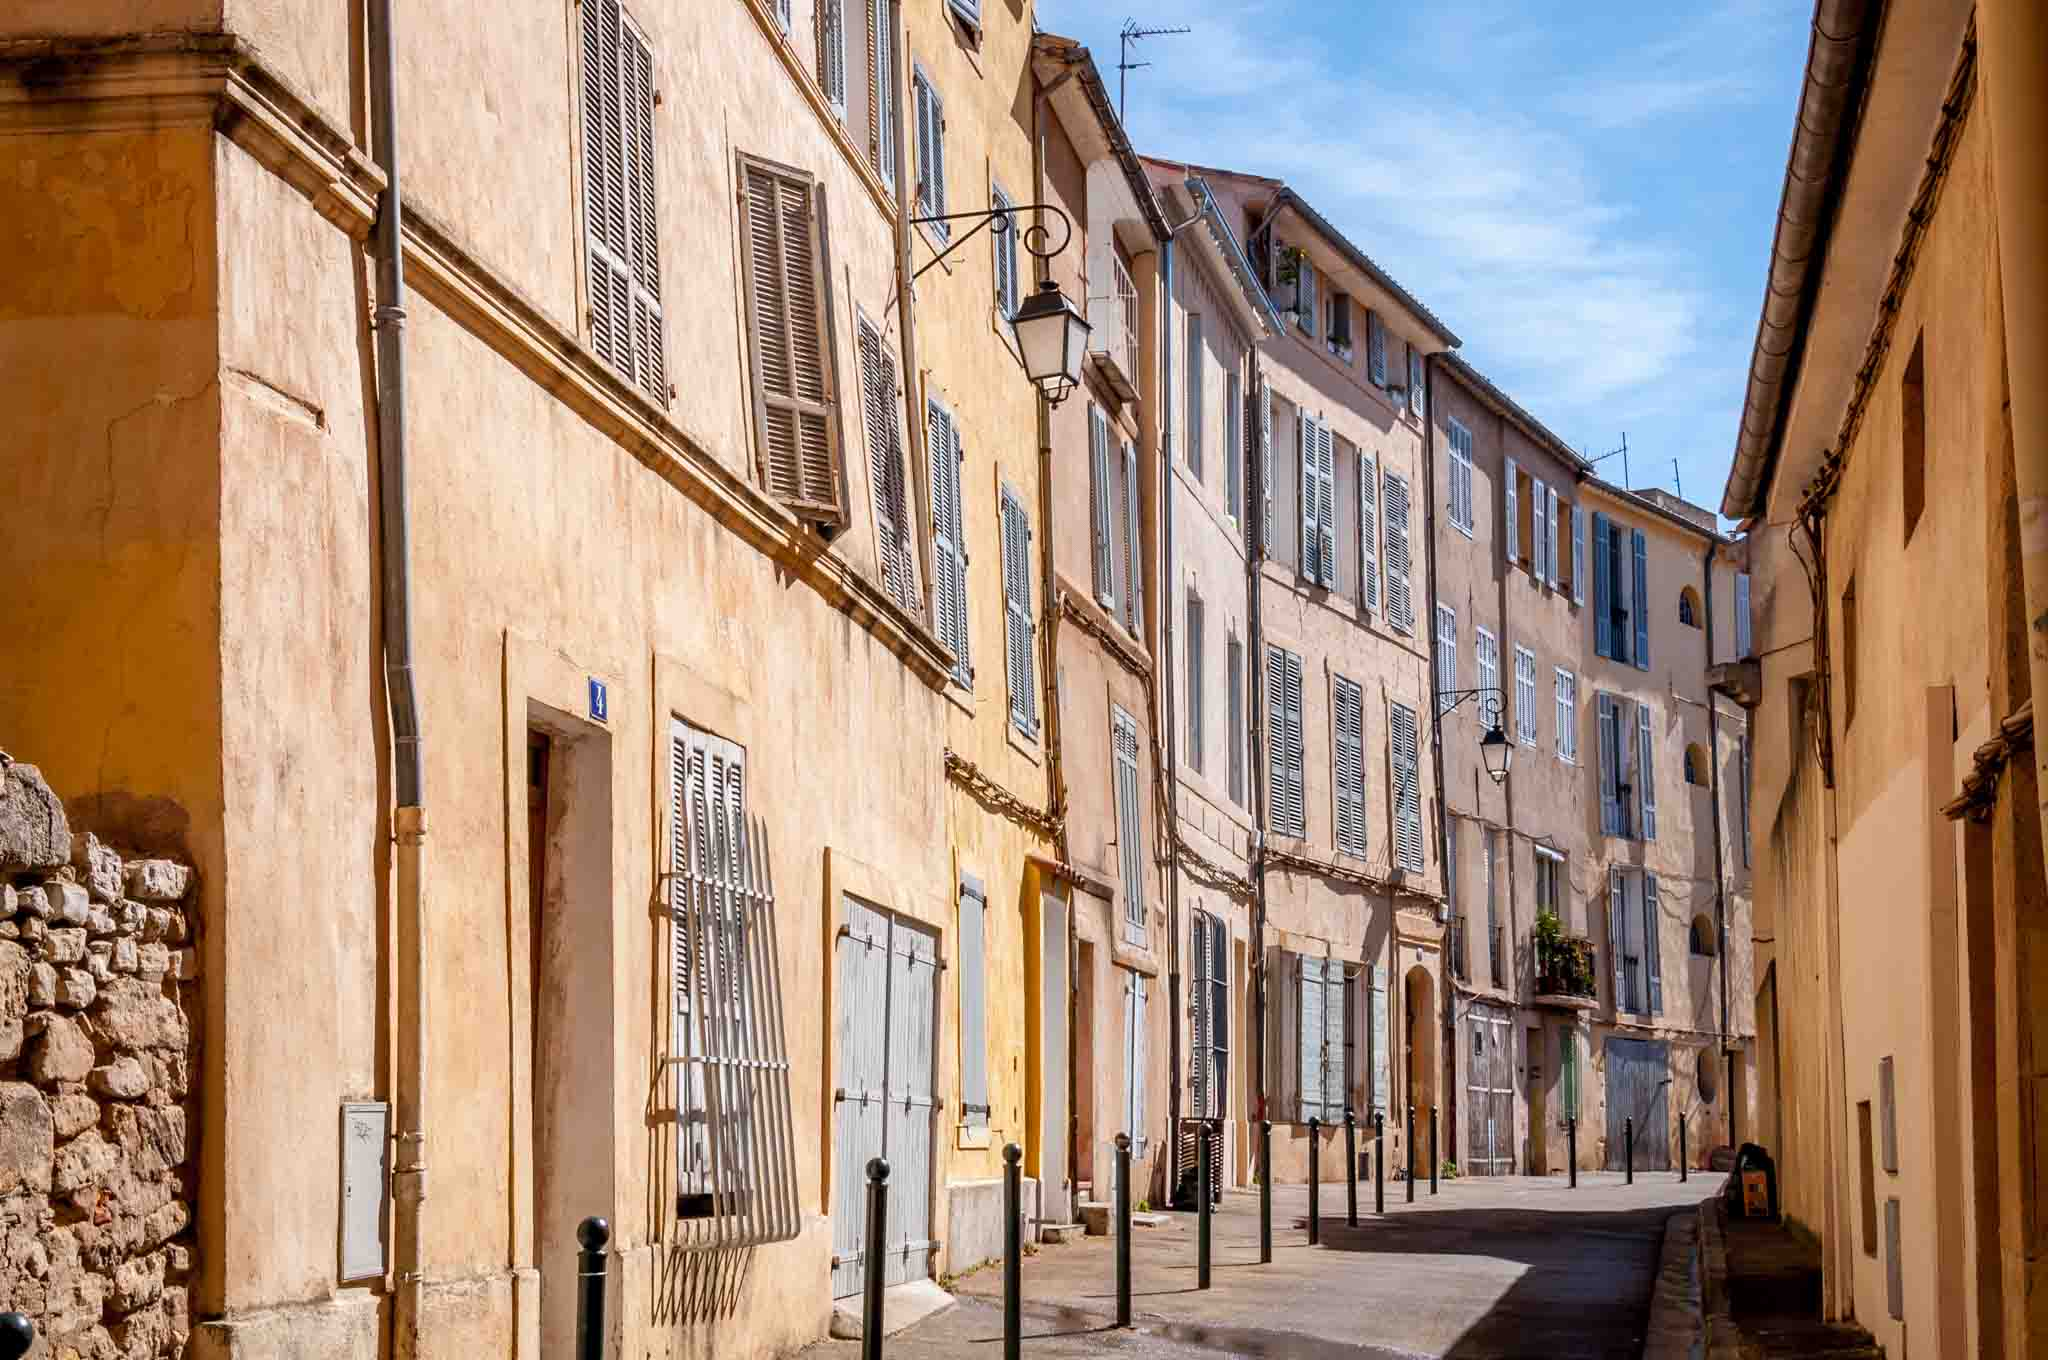 Peach and yellow buildings along a street in Aix-en-Provence France